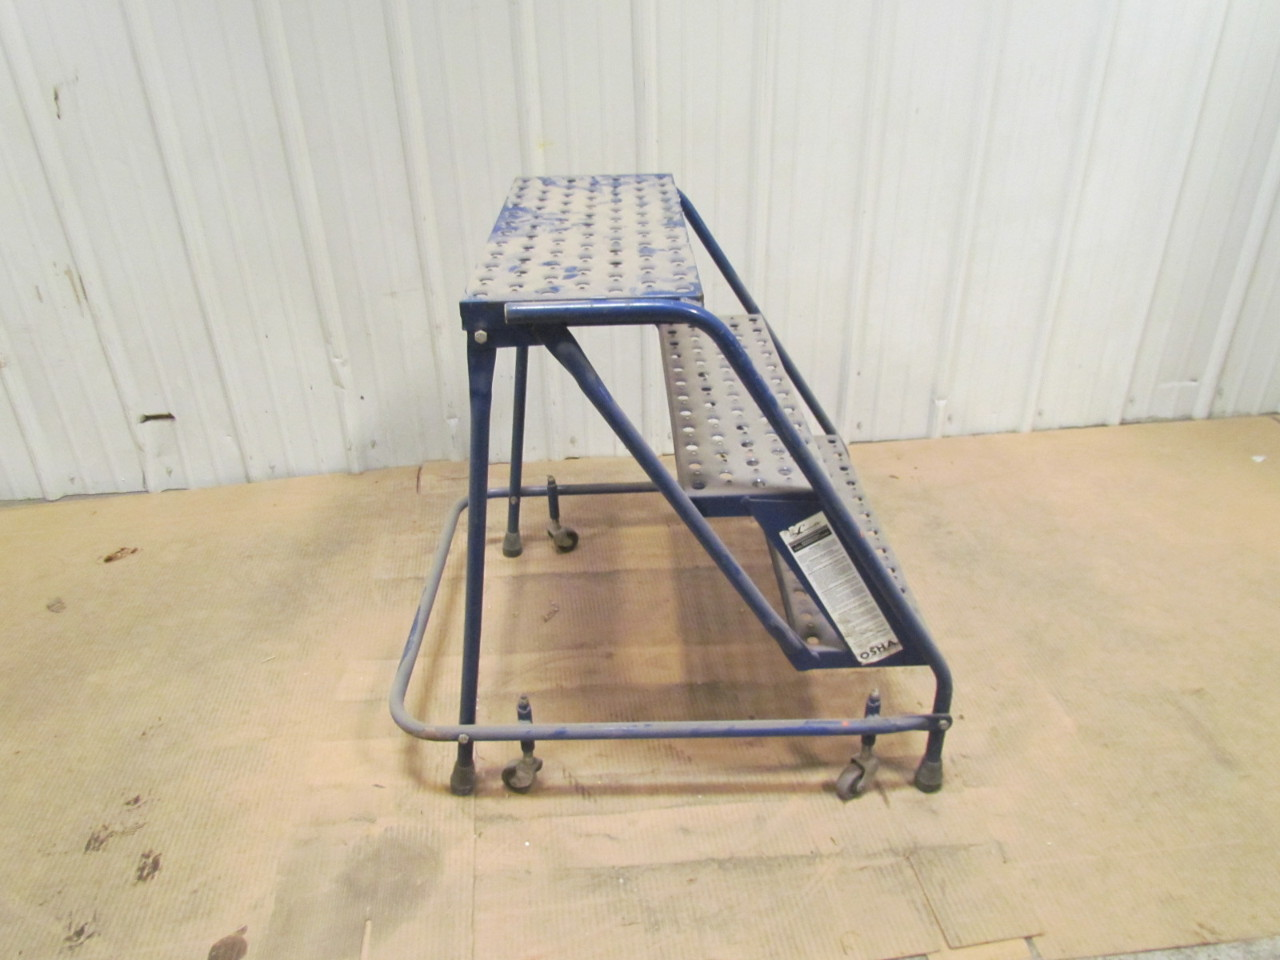 HC 252dCRT 252d01451 ROLLING CART URBAN HD 3 SHELF ROLLIN moreover 16607437 further 3step Steel Metal Ladder With Paint Tray further Stainless Food Service Stainless Steel together with Hoerr Inc U Summit Masonry Weekly Toolbox Talk Car Tips Like Success Car Ladder Safety Topics Tips Like Success Office Construction Poster. on rubbermaid rolling ladders